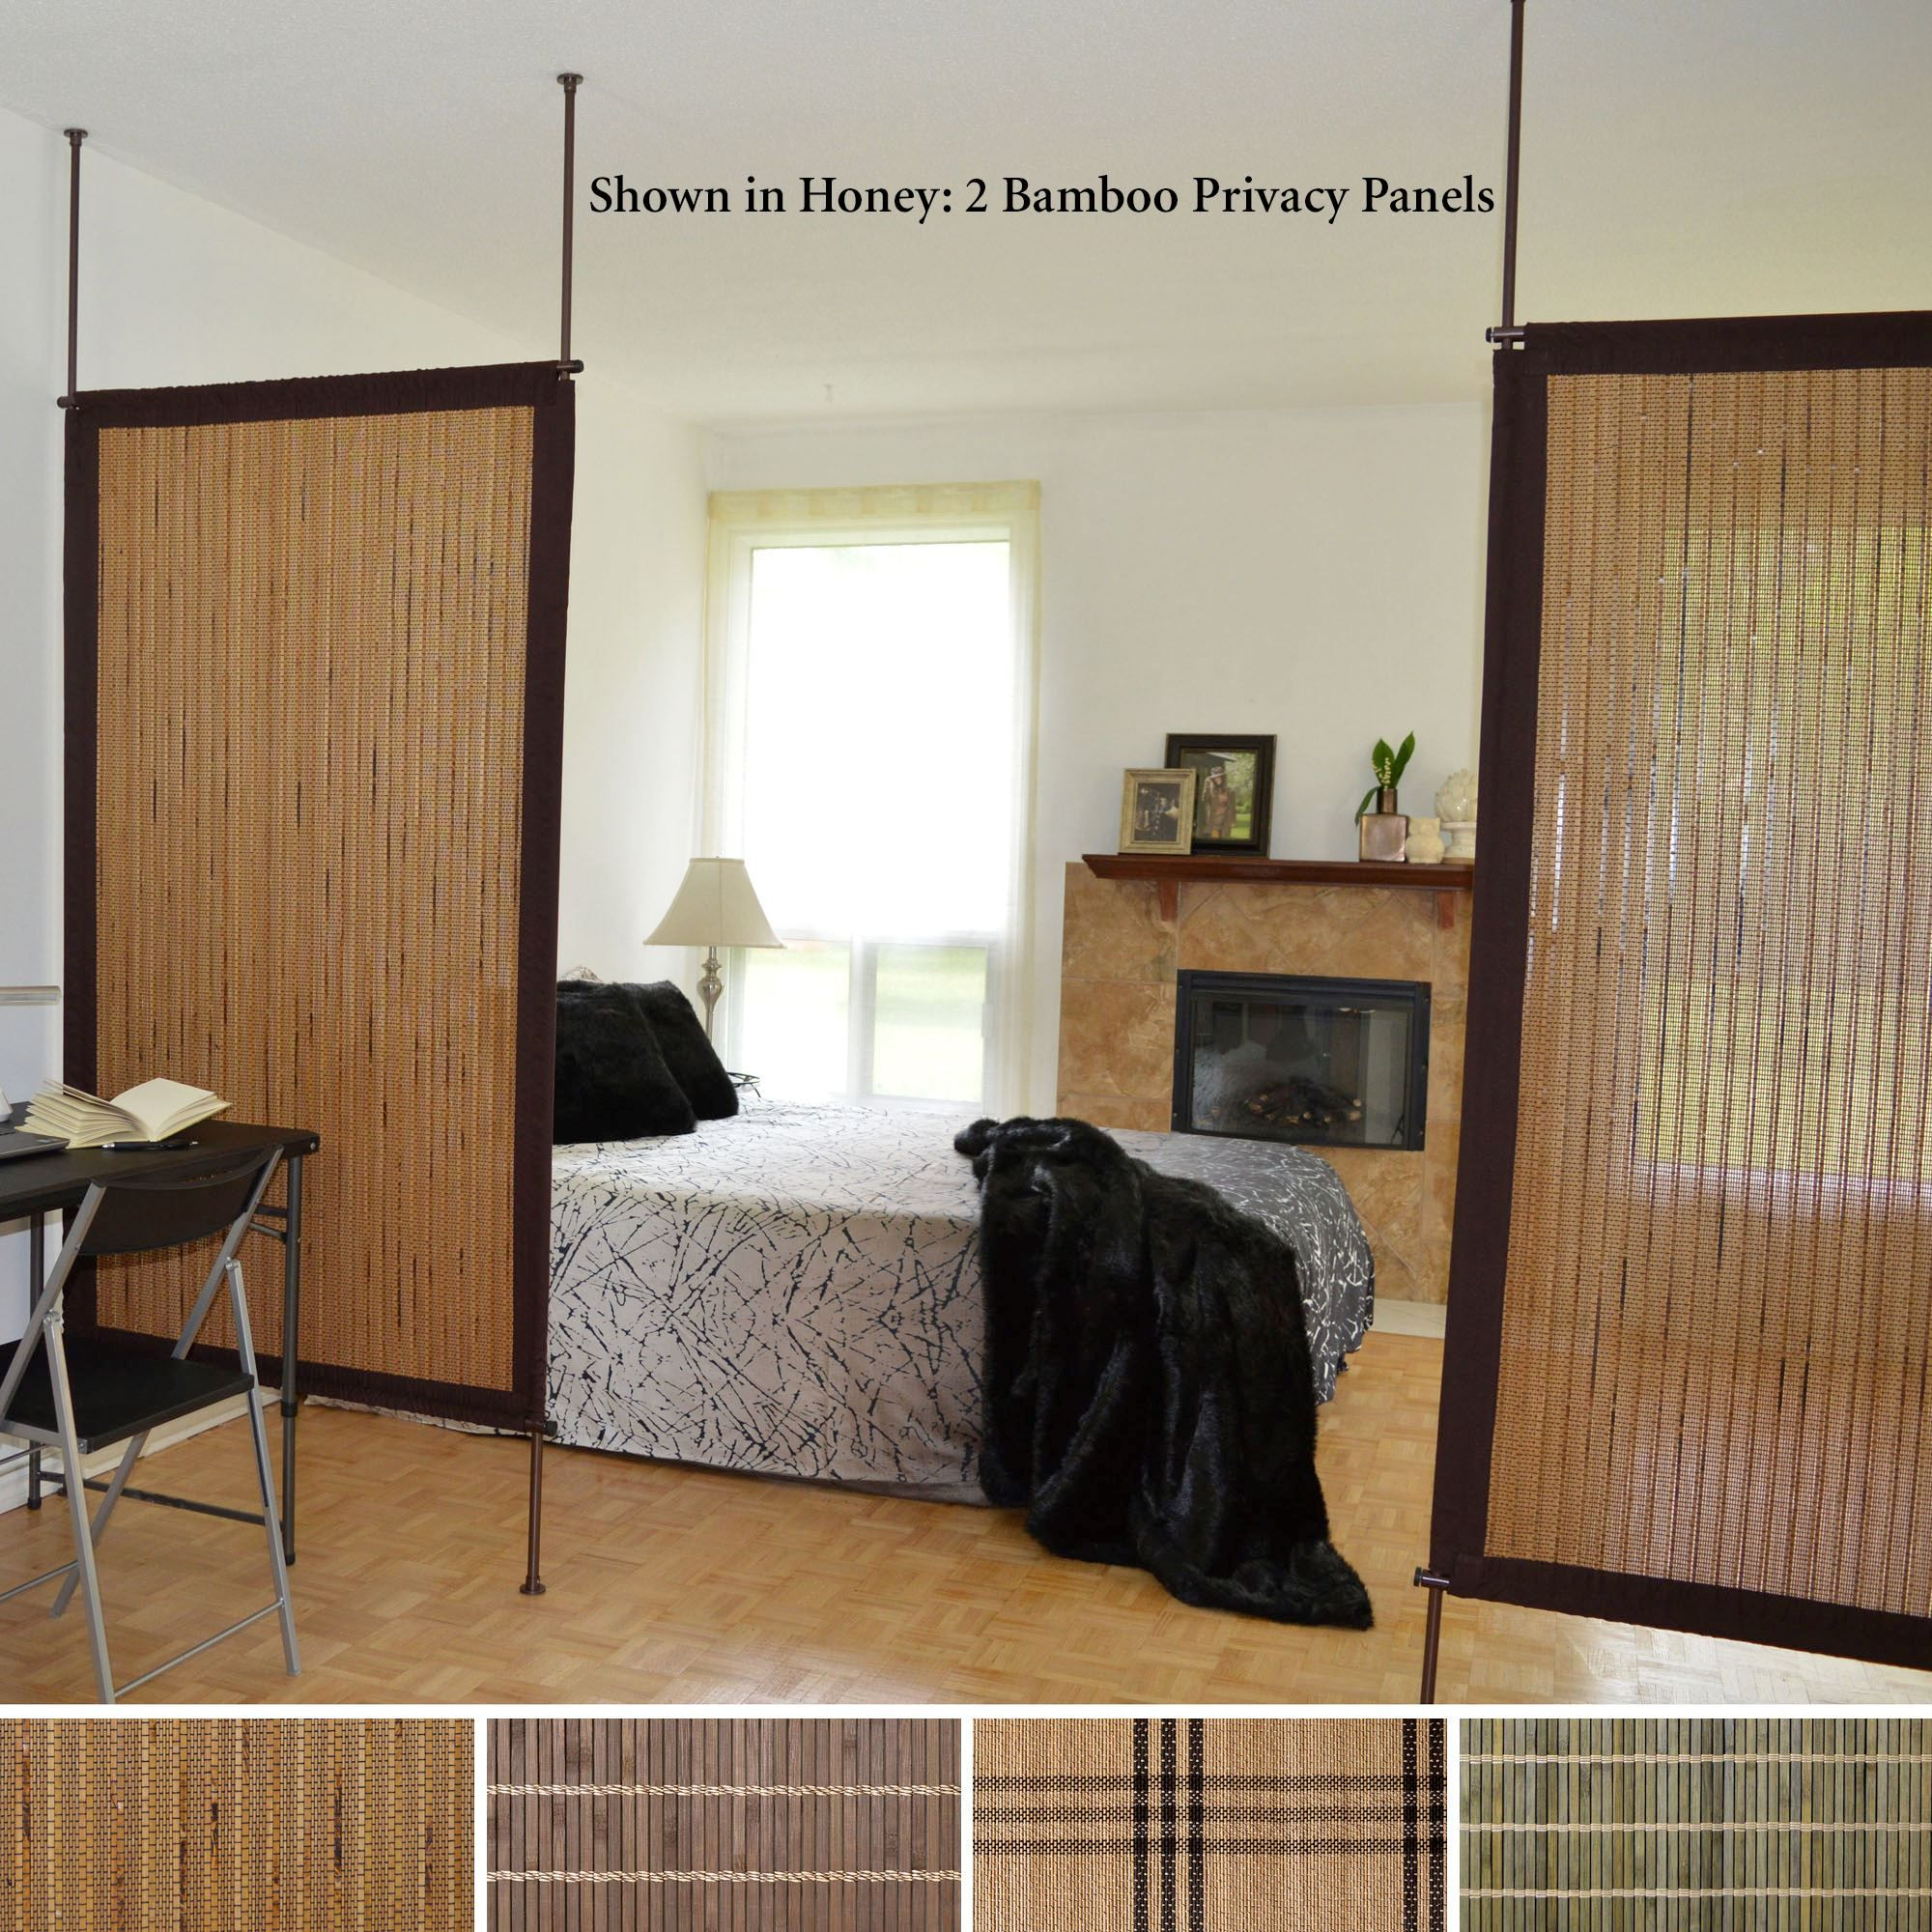 Studio Bed Divider Bamboo Privacy Panel Screen Room Divider House Privacy